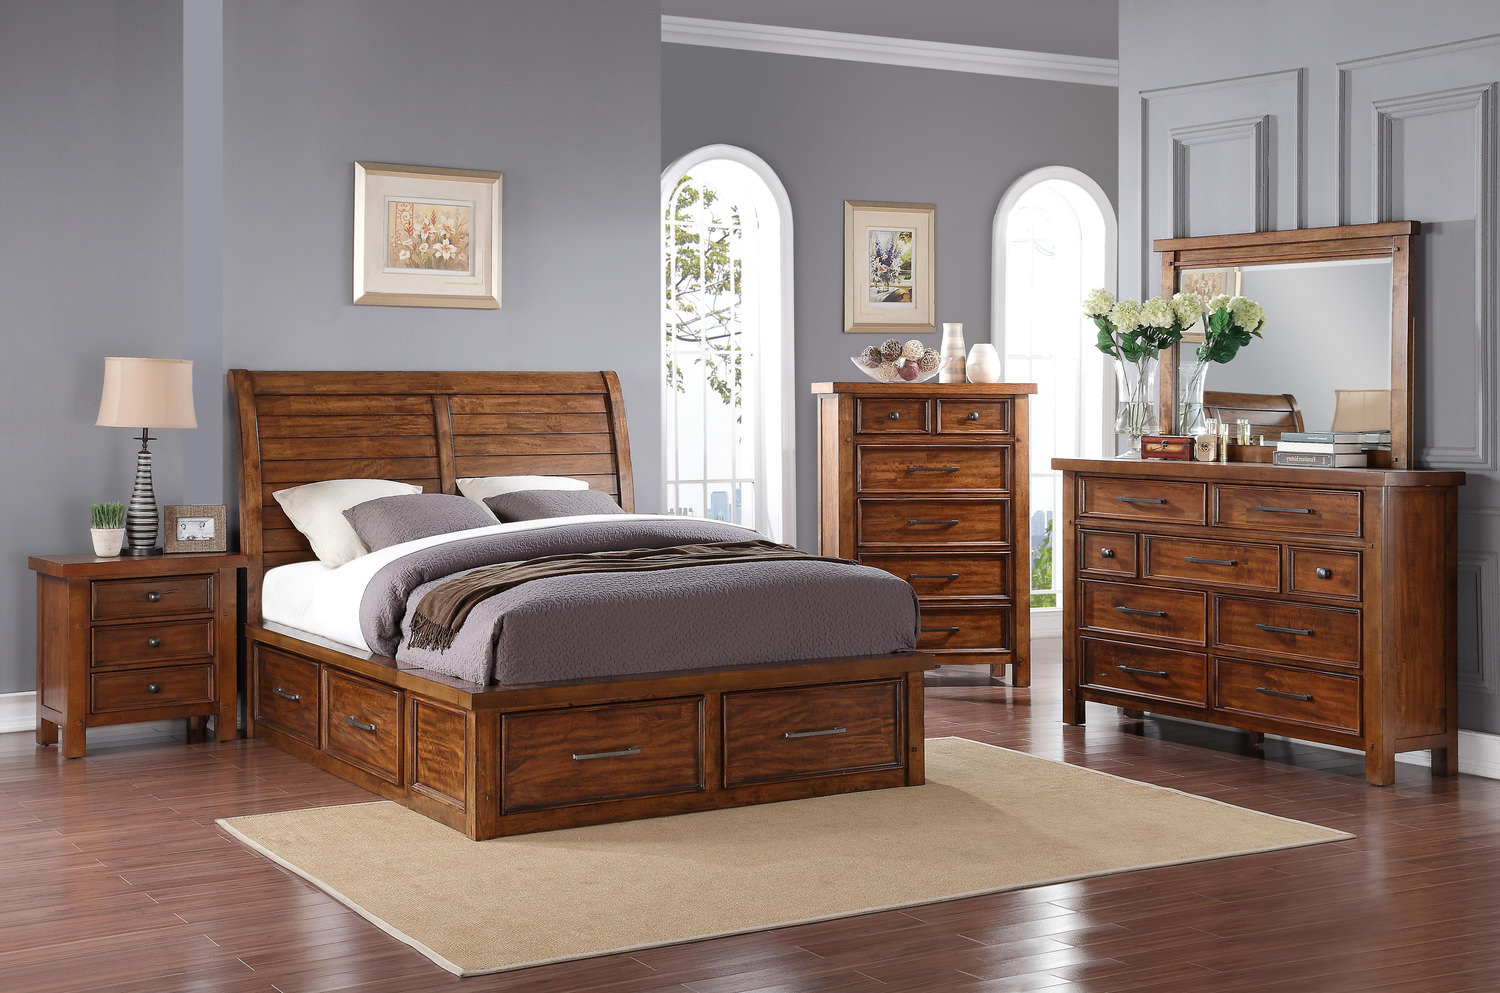 Delray Storage Bedroom Suite By Thomas Cole Hom Furniture